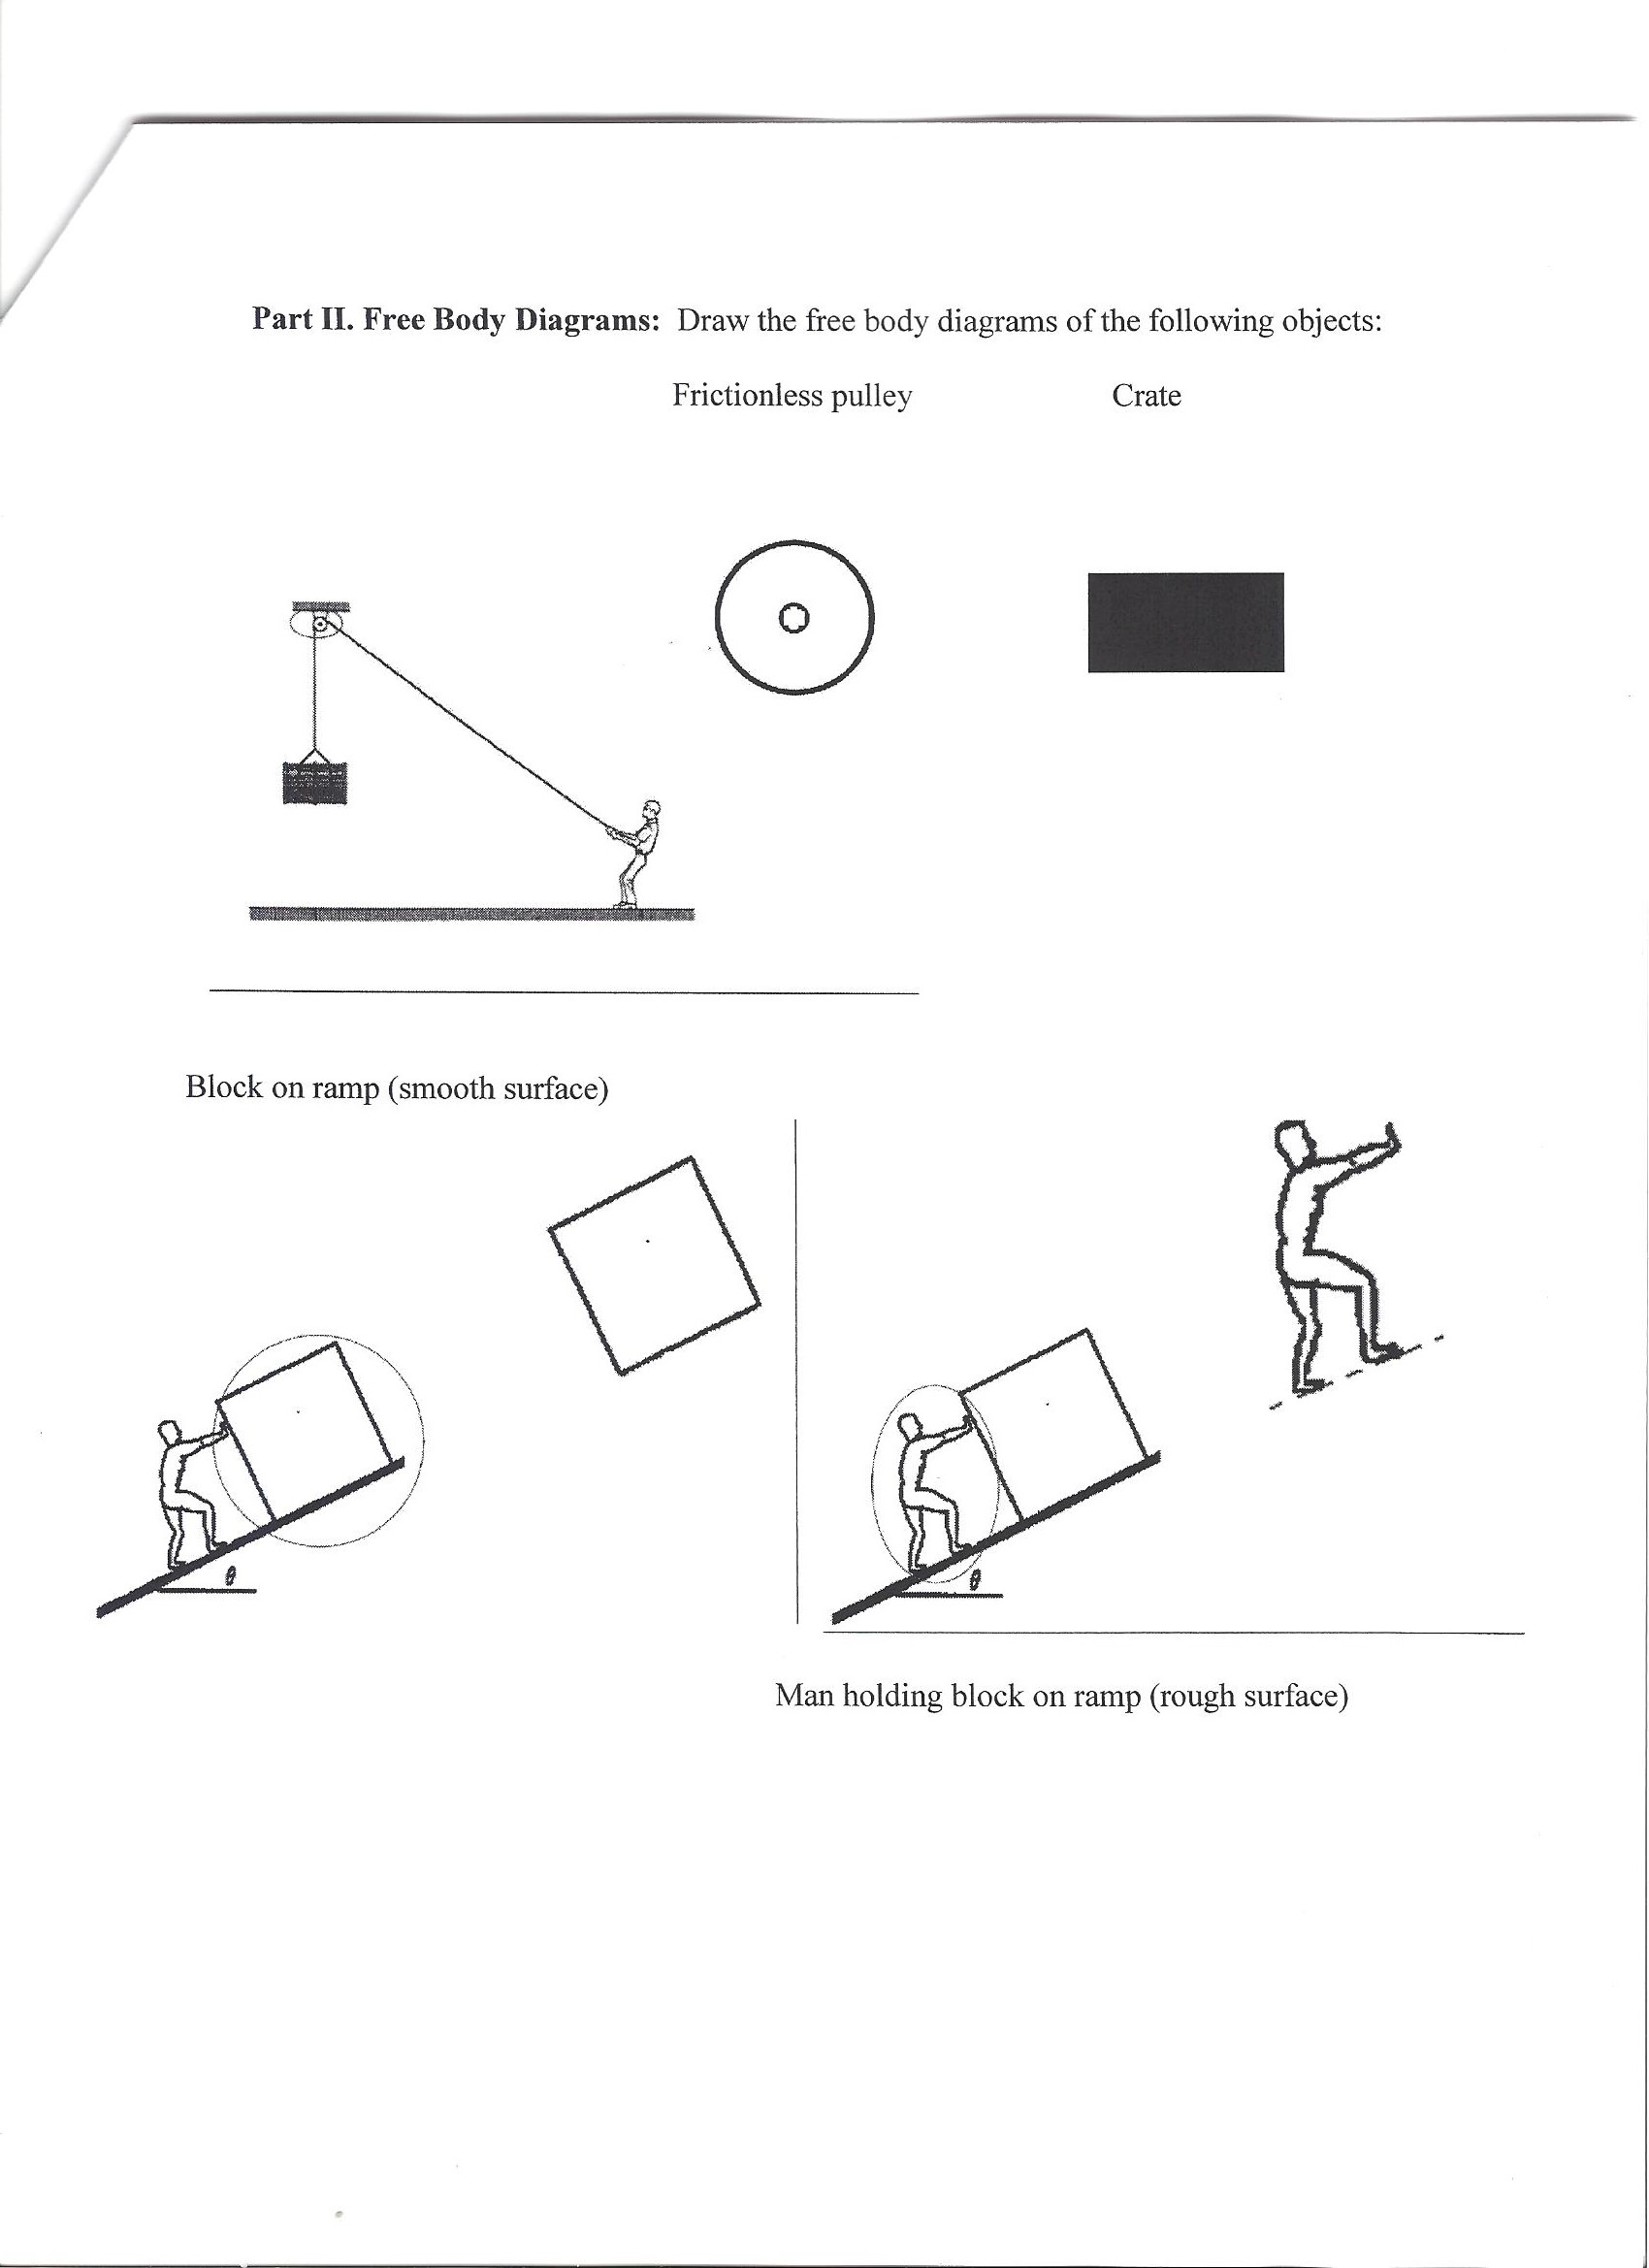 Free Body Diagrams: Draw the free body diagrams of